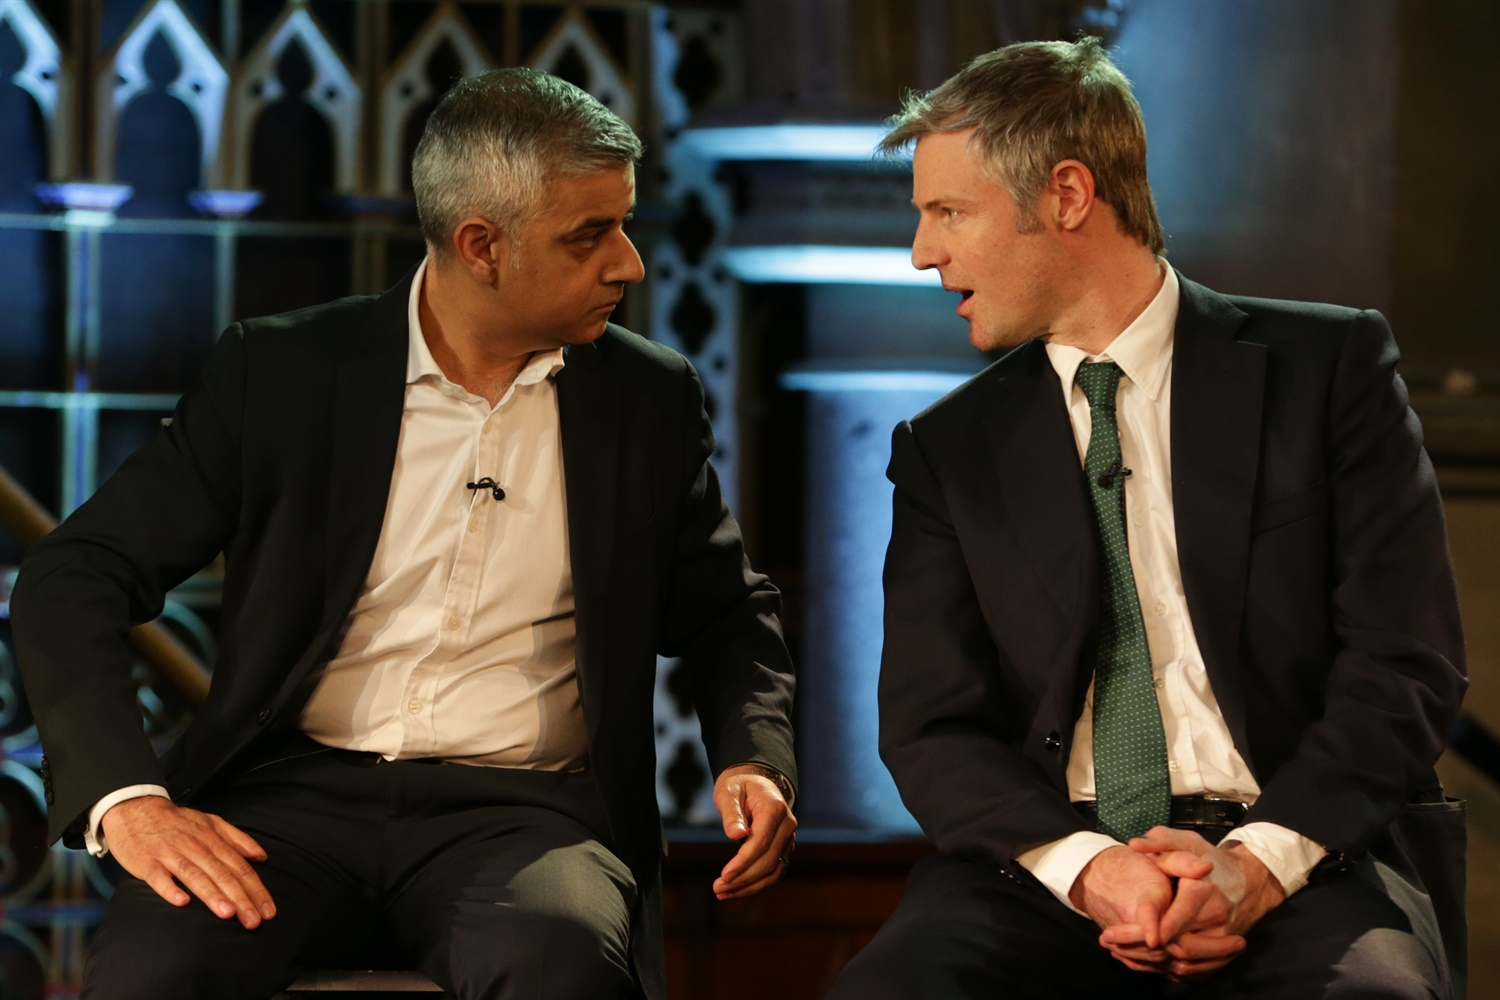 TfL under attack from London mayoral candidates